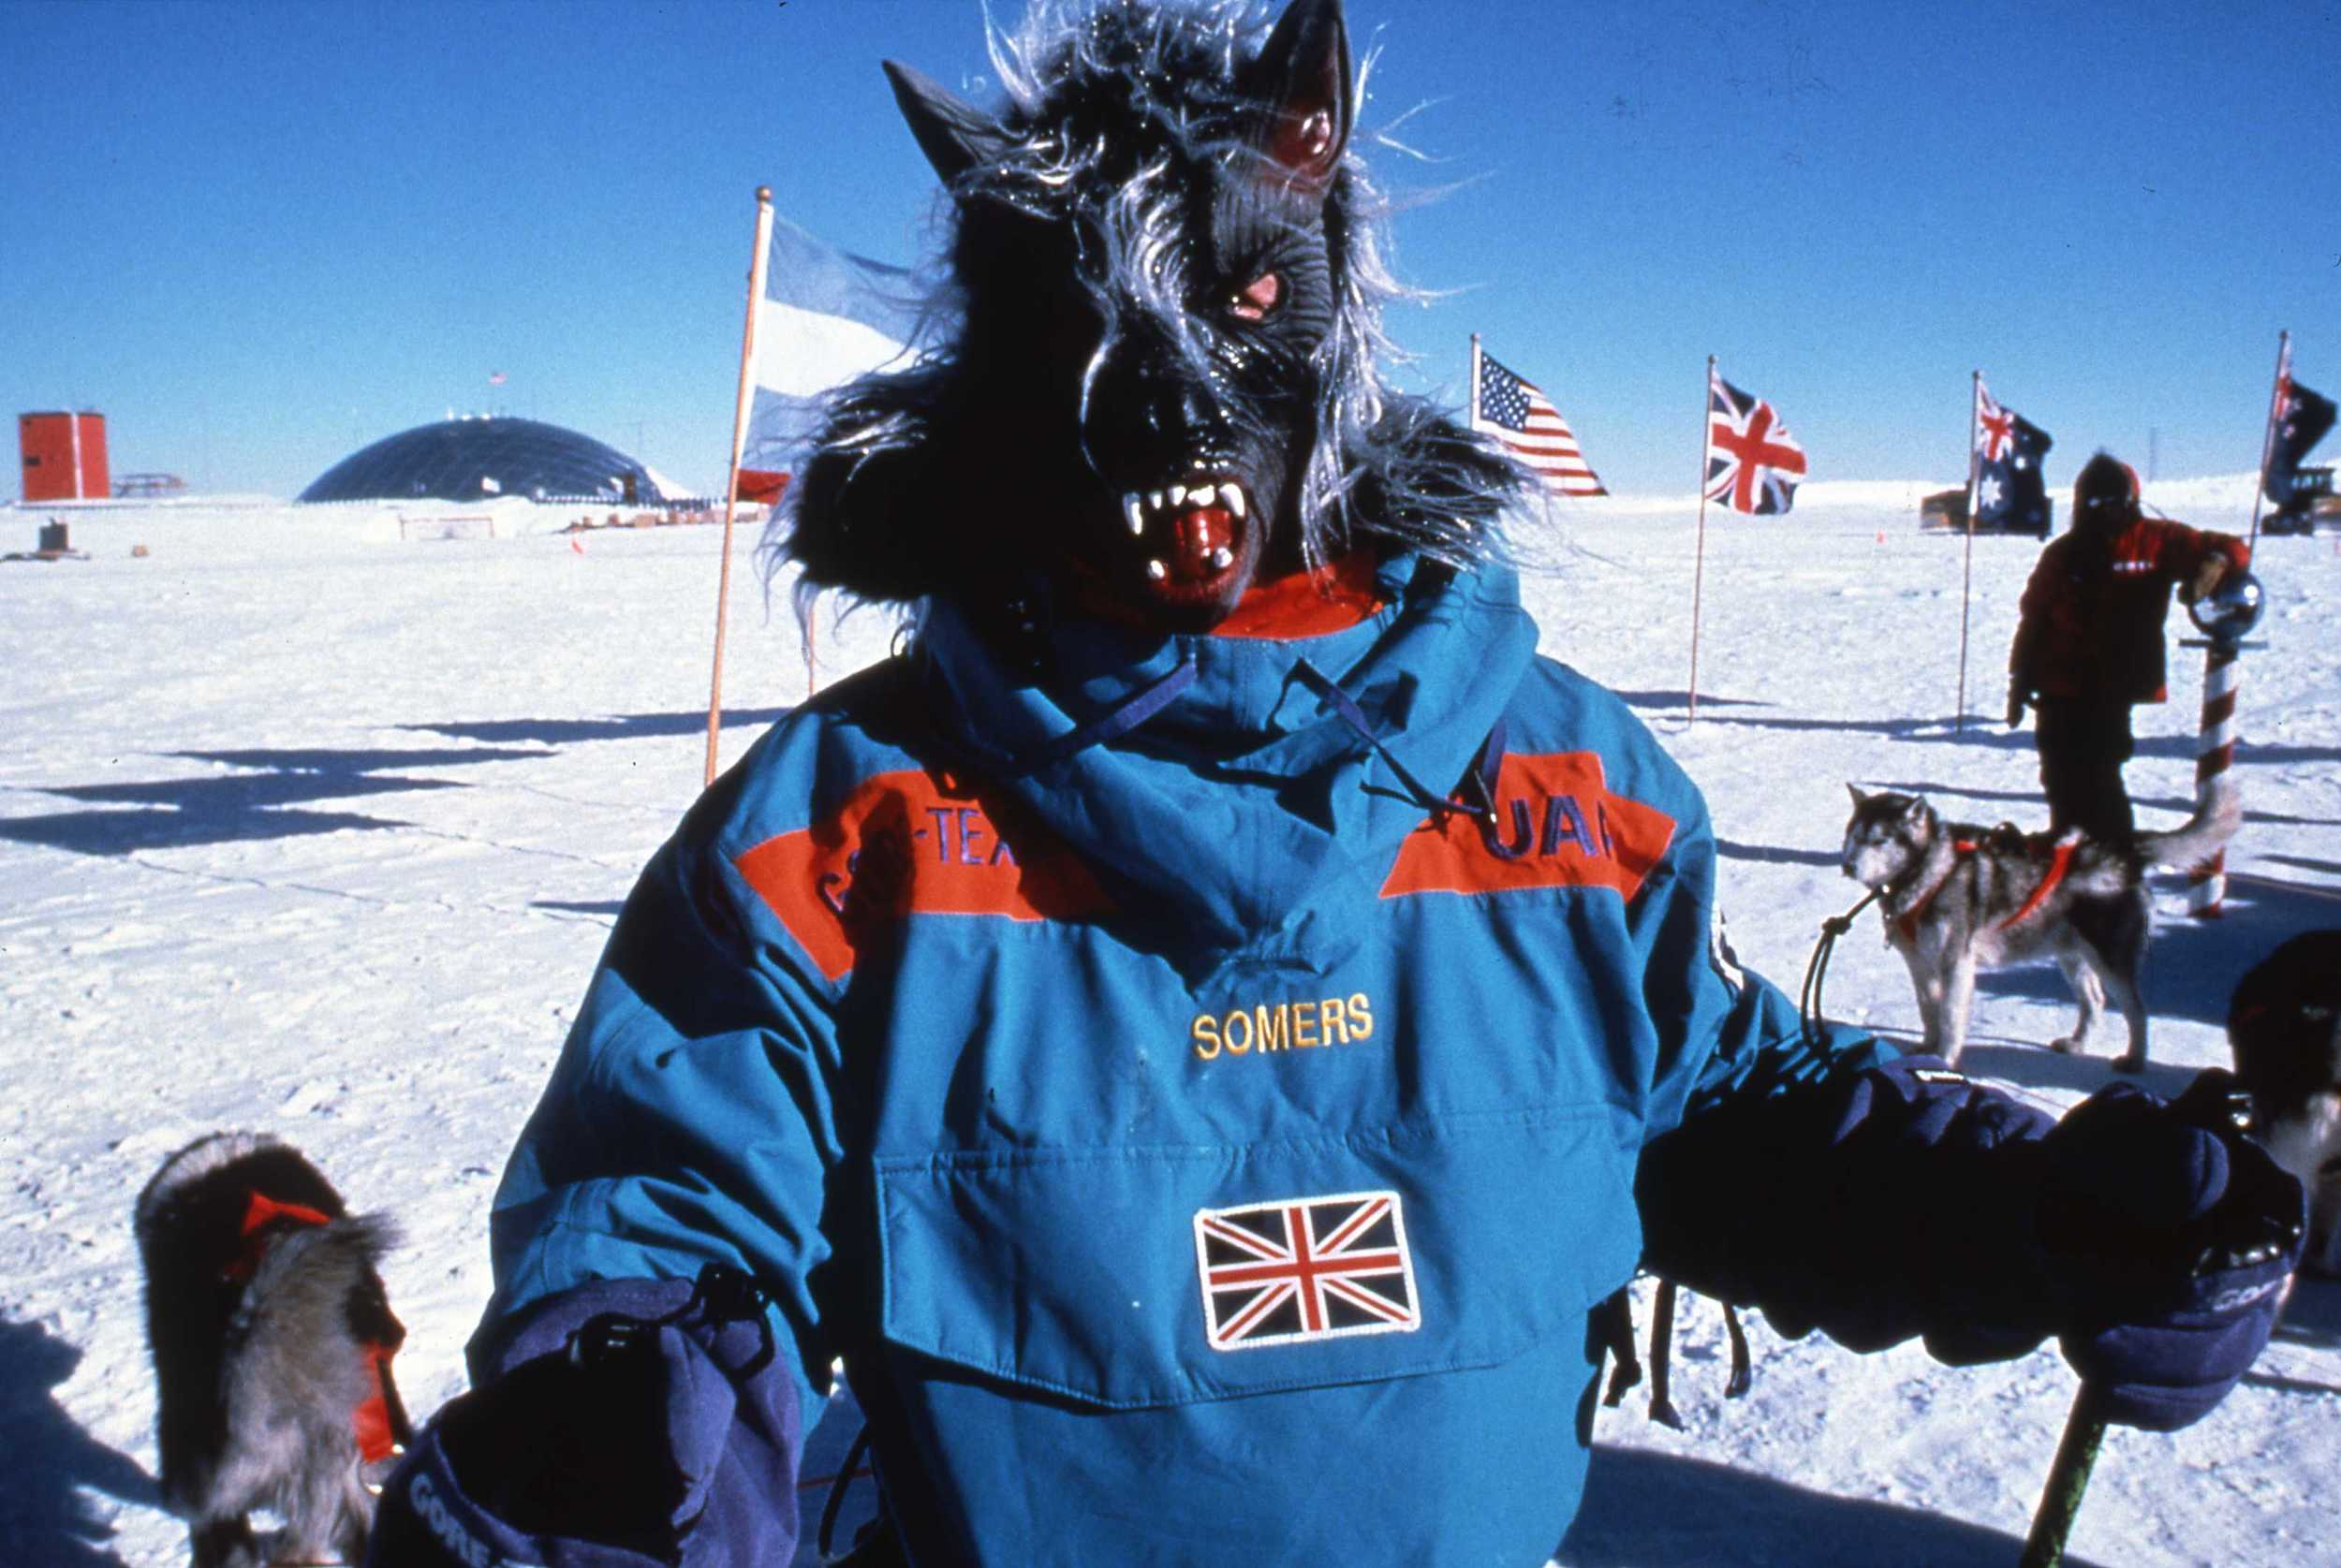 At the South Pole,Geoff Somers wears the mask he snuck into the resupply. ©Will Steger by Gordon Wiltsie